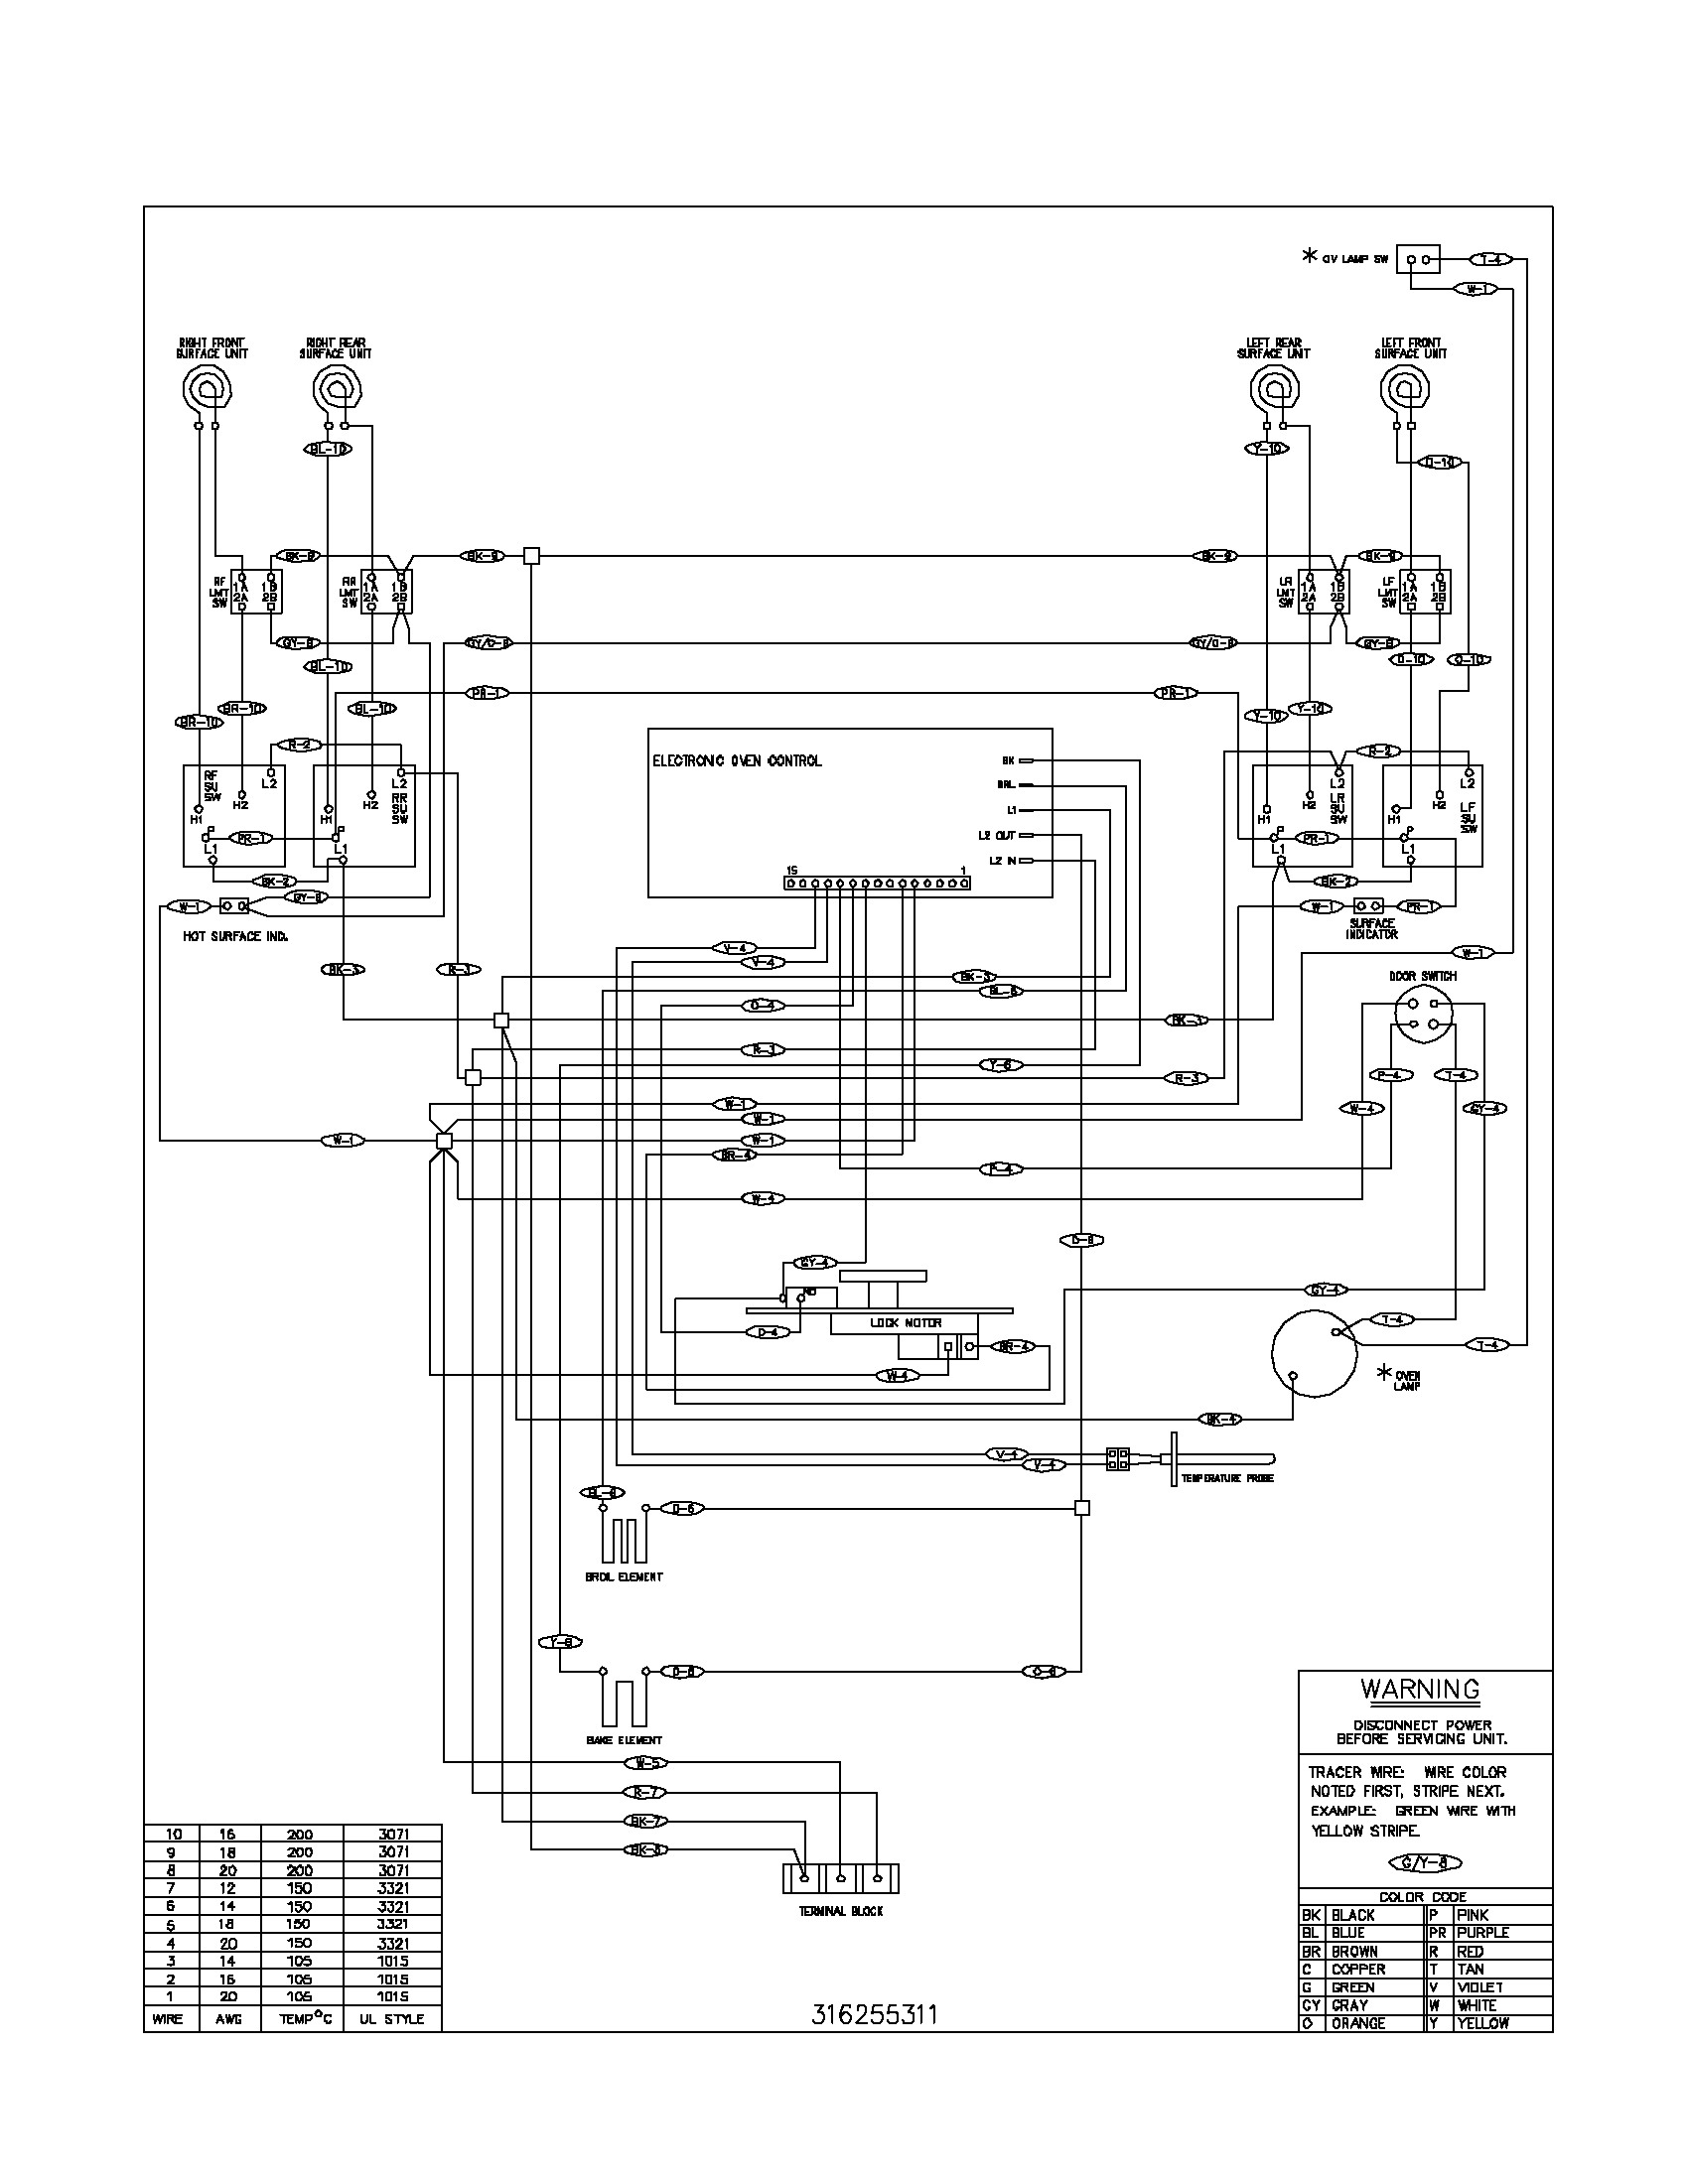 Ge Buck Boost Transformer Wiring Diagram Sample